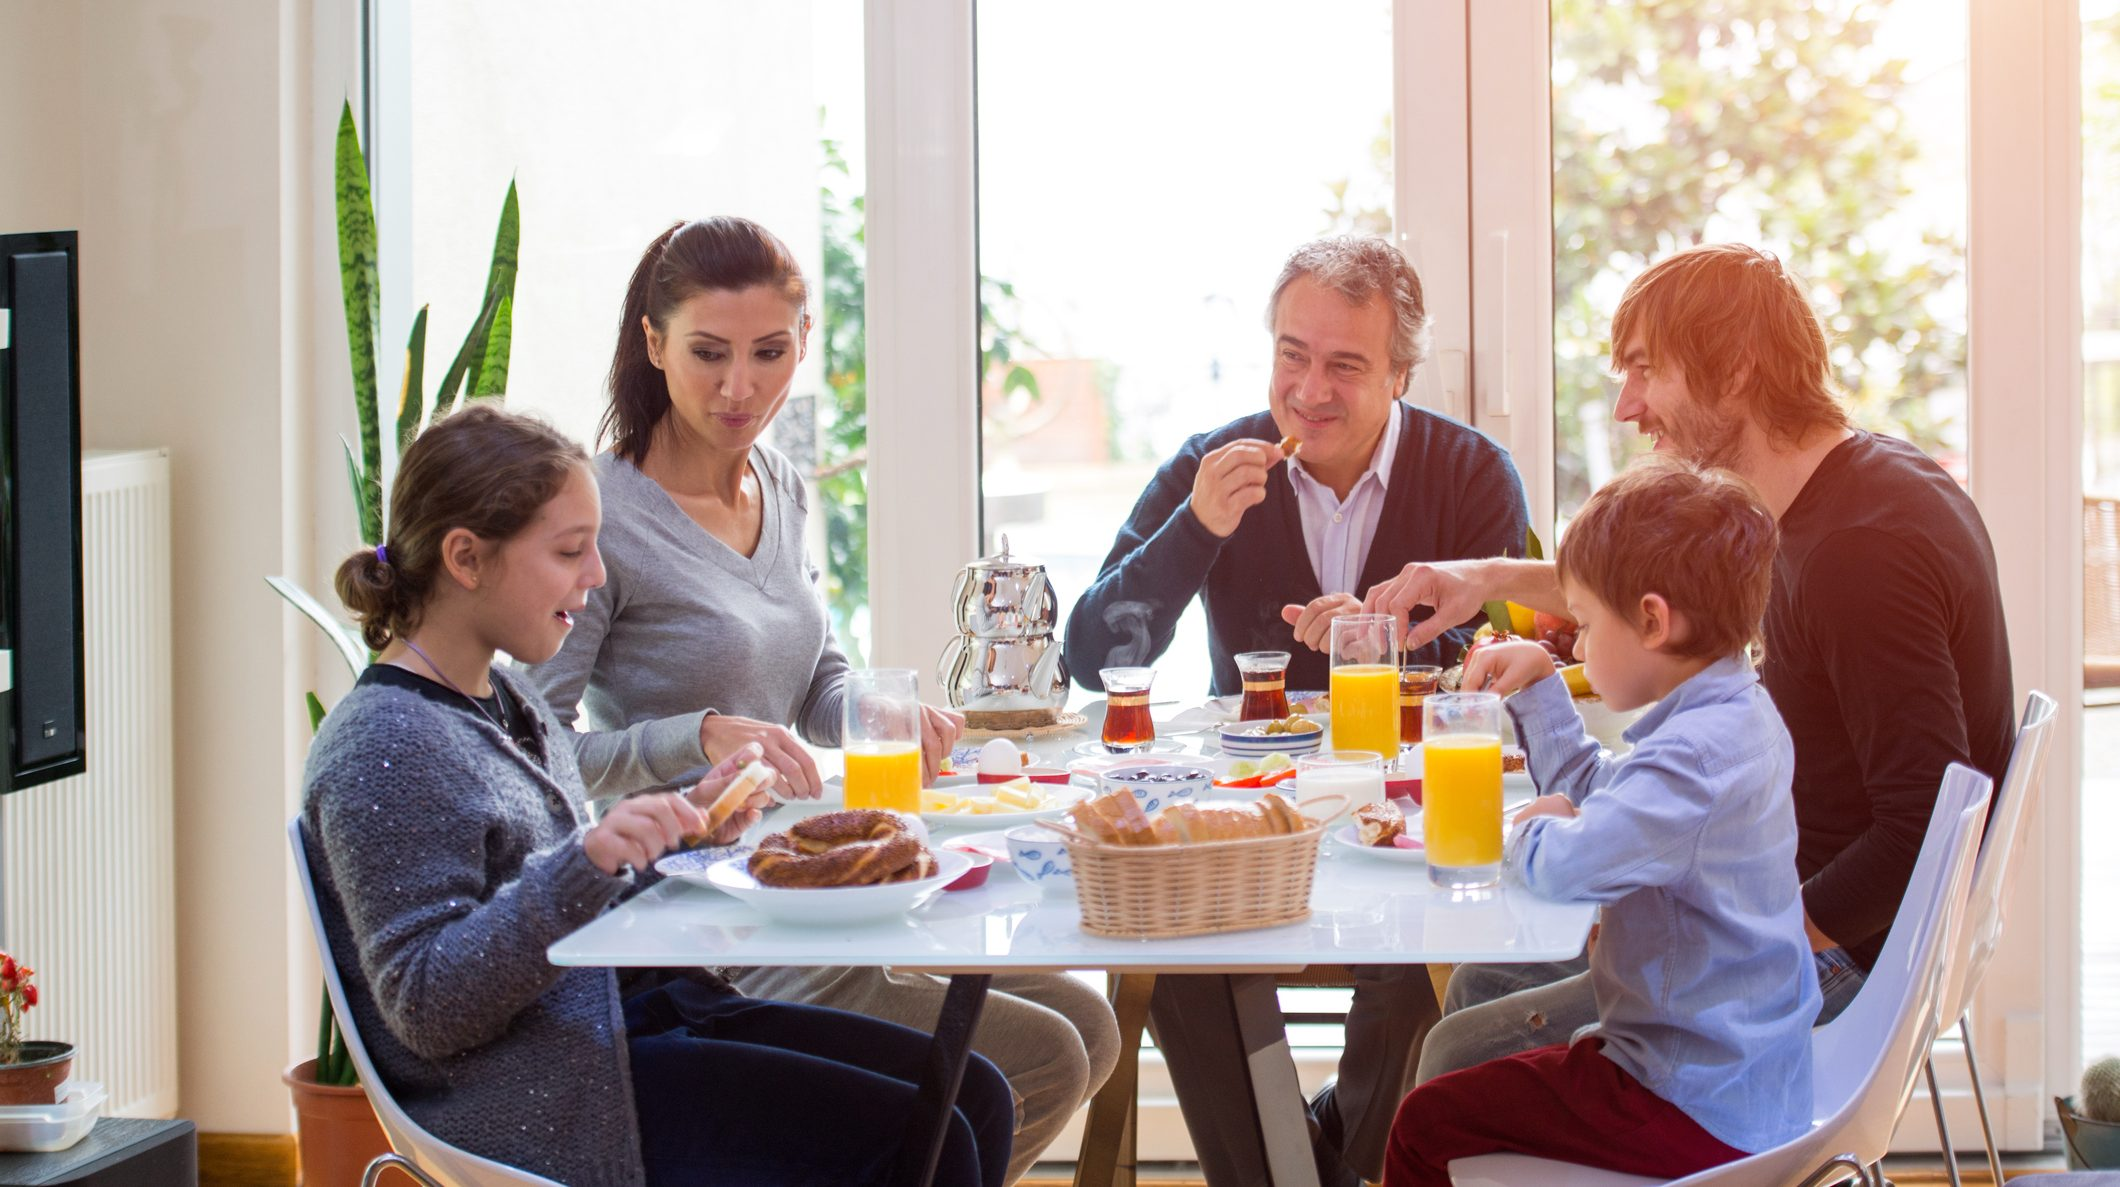 family eating breakfast - HD 2120×1187